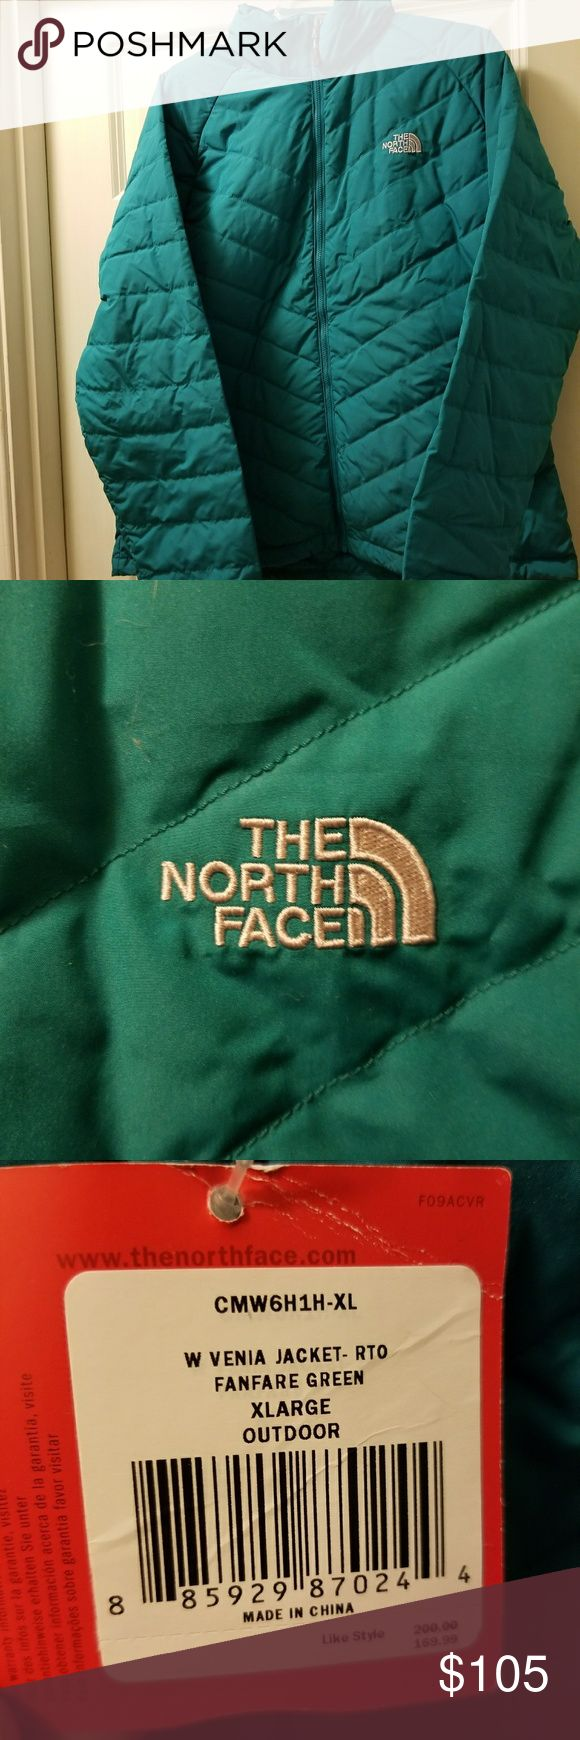 The North Face W Venia Women's Jacket XL Beautiful teal color,  women's XL, NWT, bought from the outlet so there's no warranty. The North Face Jackets & Coats